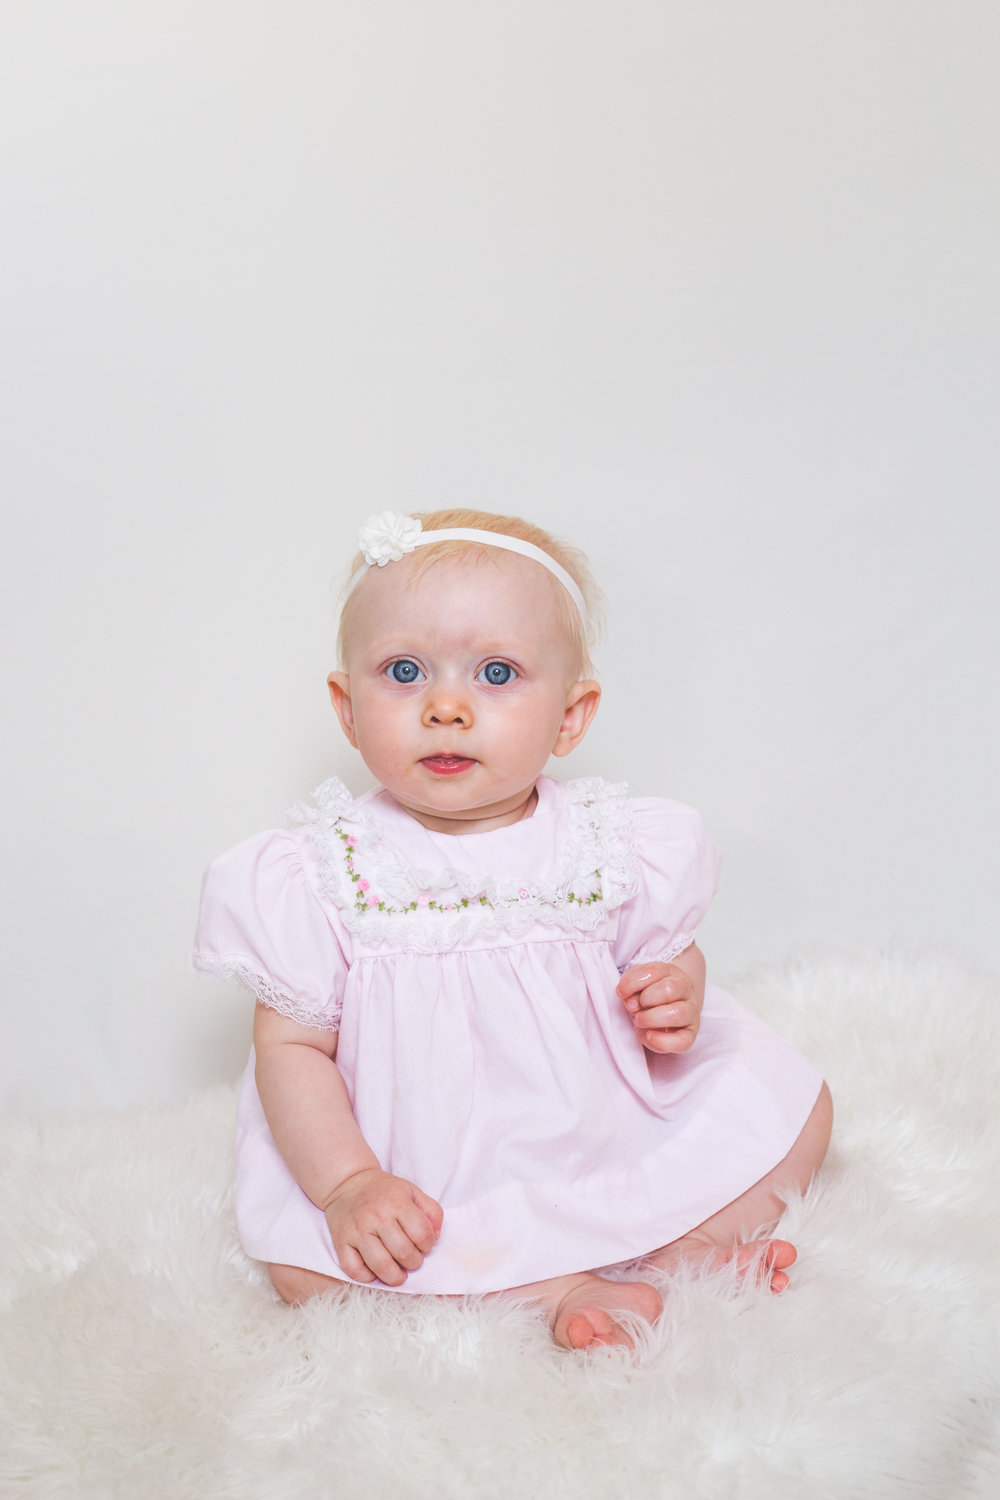 The First Year - $600($200 in savings)Newborn Session - 30 photos6 Month Session - 20 photos1 Year Session - 20 photosFamily Session - 30 photosAll photos delivered digitally via an online gallery